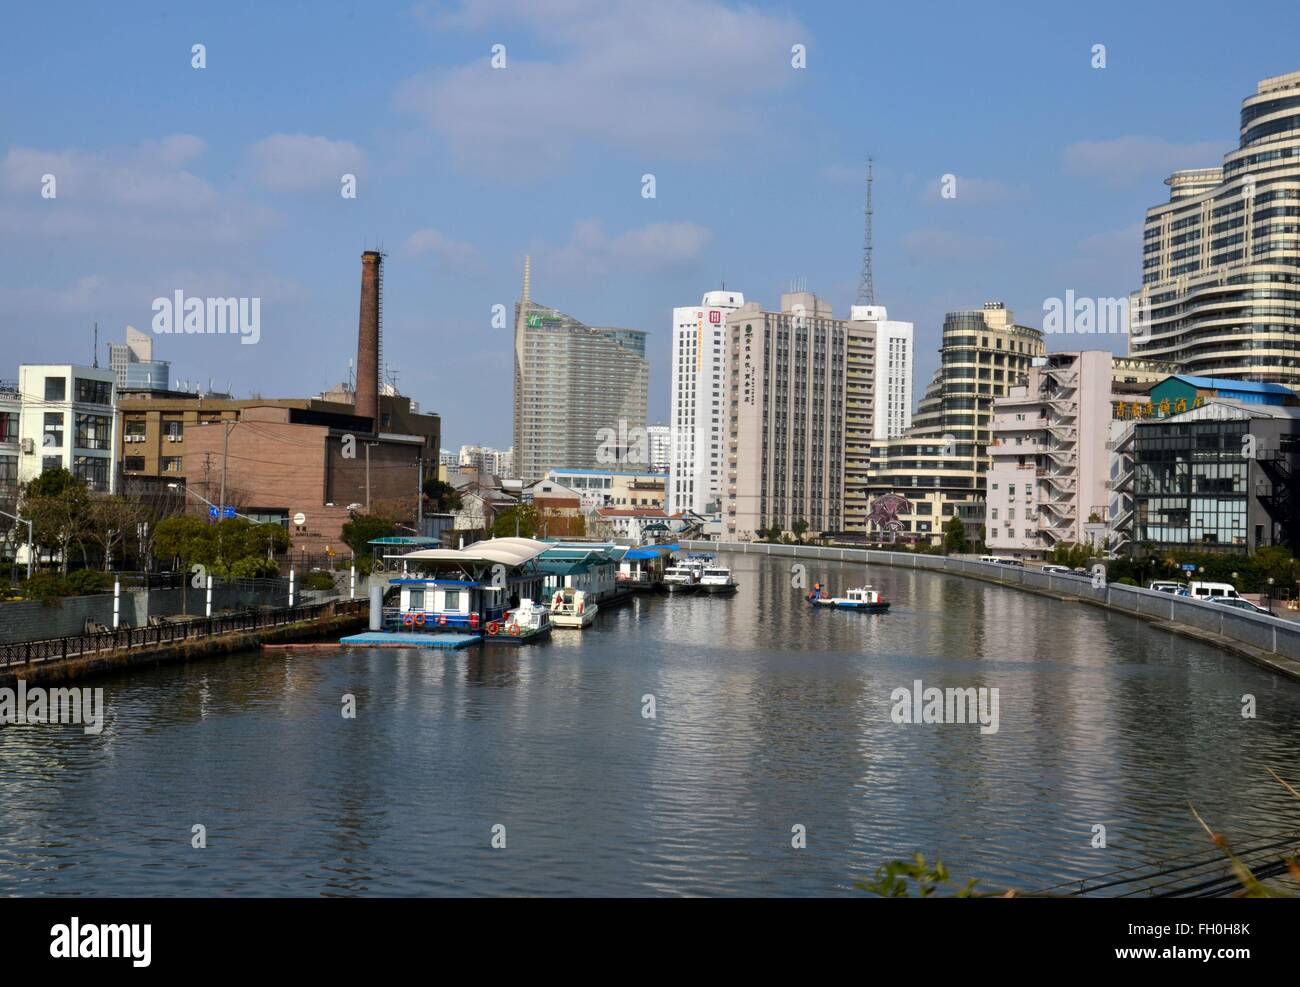 River canal with utility boat chimney and tall buildings Holiday Inn hotel Shanghai China - Stock Image